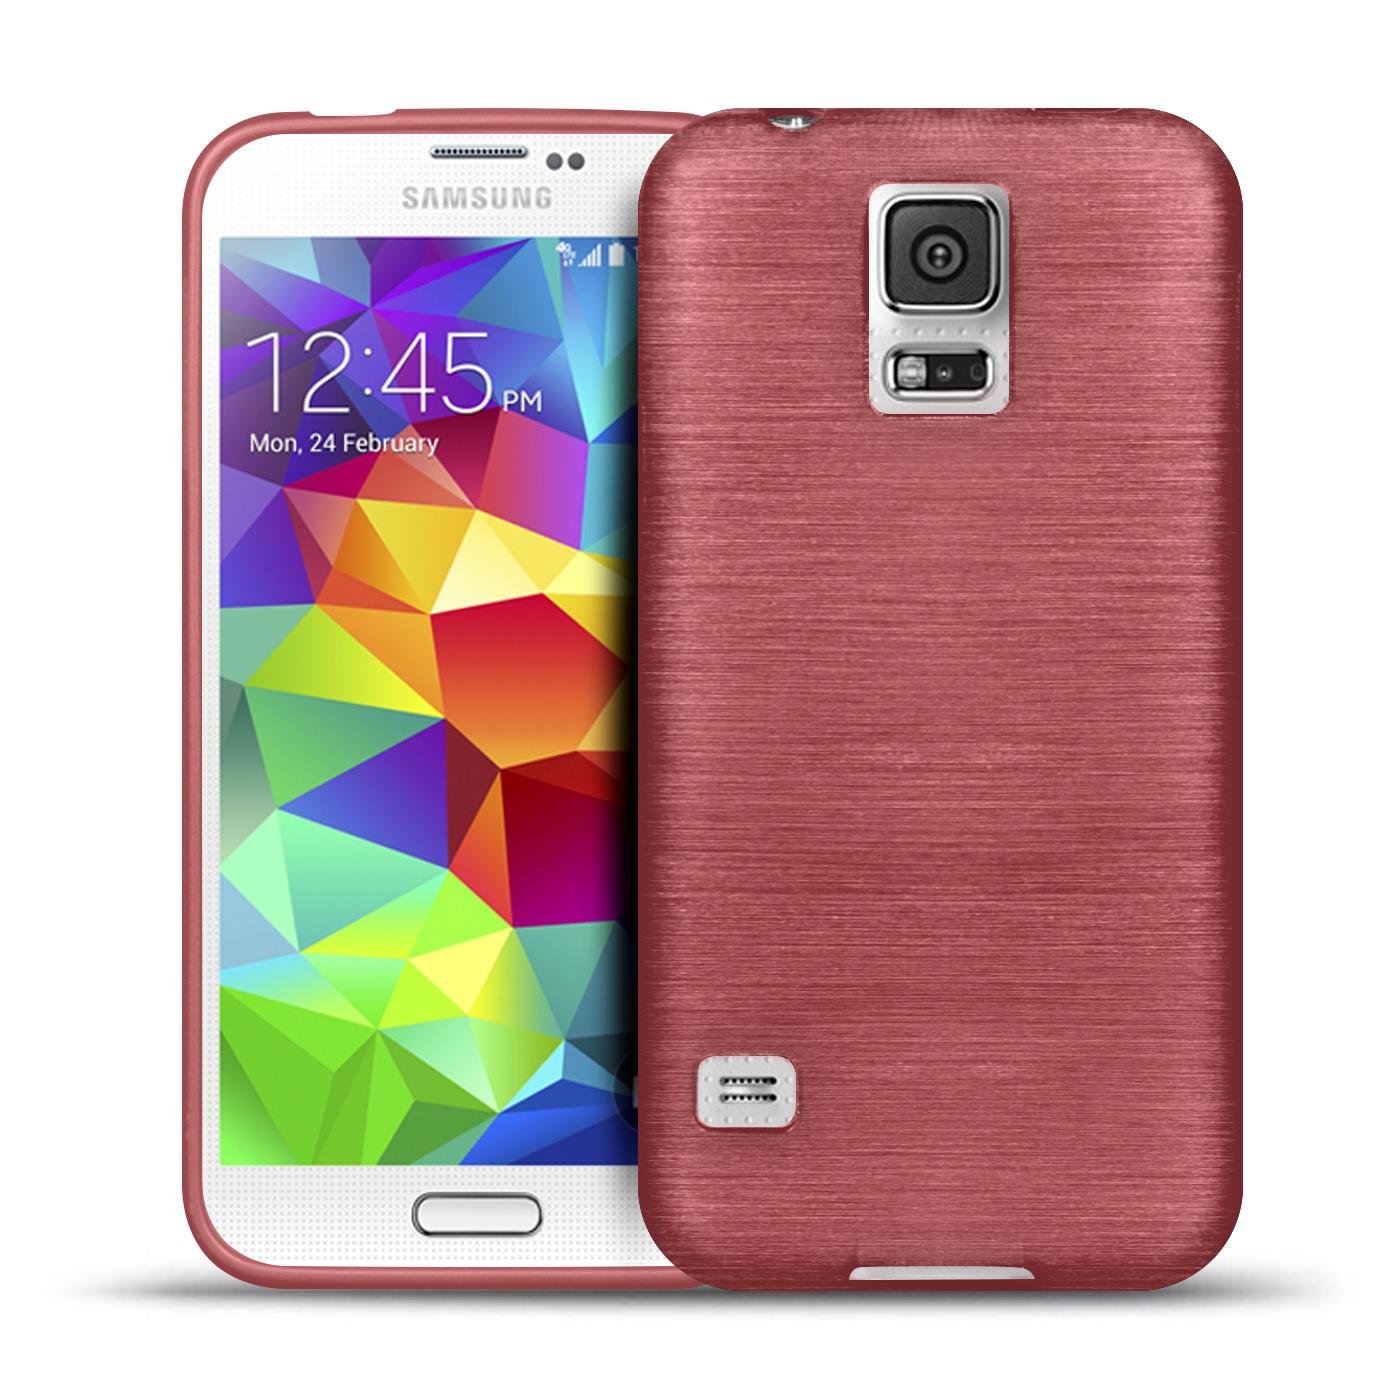 timeless design c4648 4202c Protective Case Case Samsung Galaxy S5 Neo Case Cover Pouch Silicone